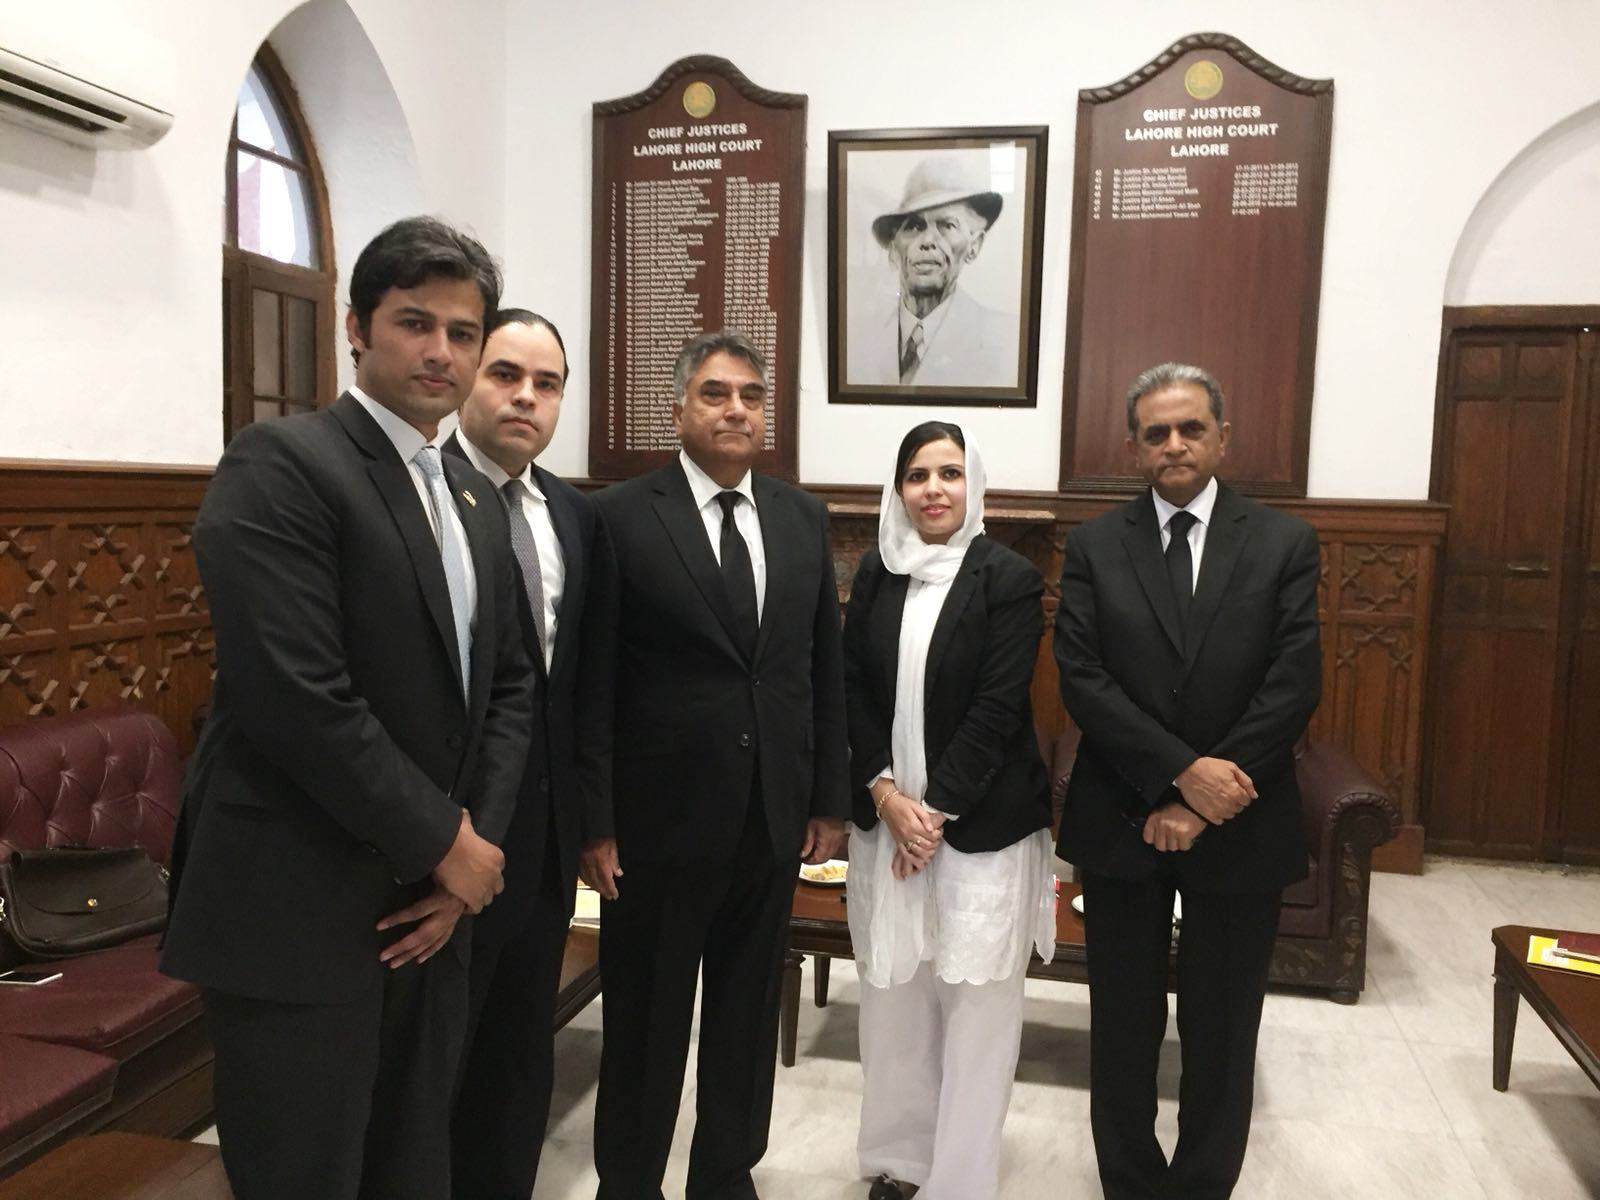 PJN Team Meeting with Chief Justice Lahore High Court